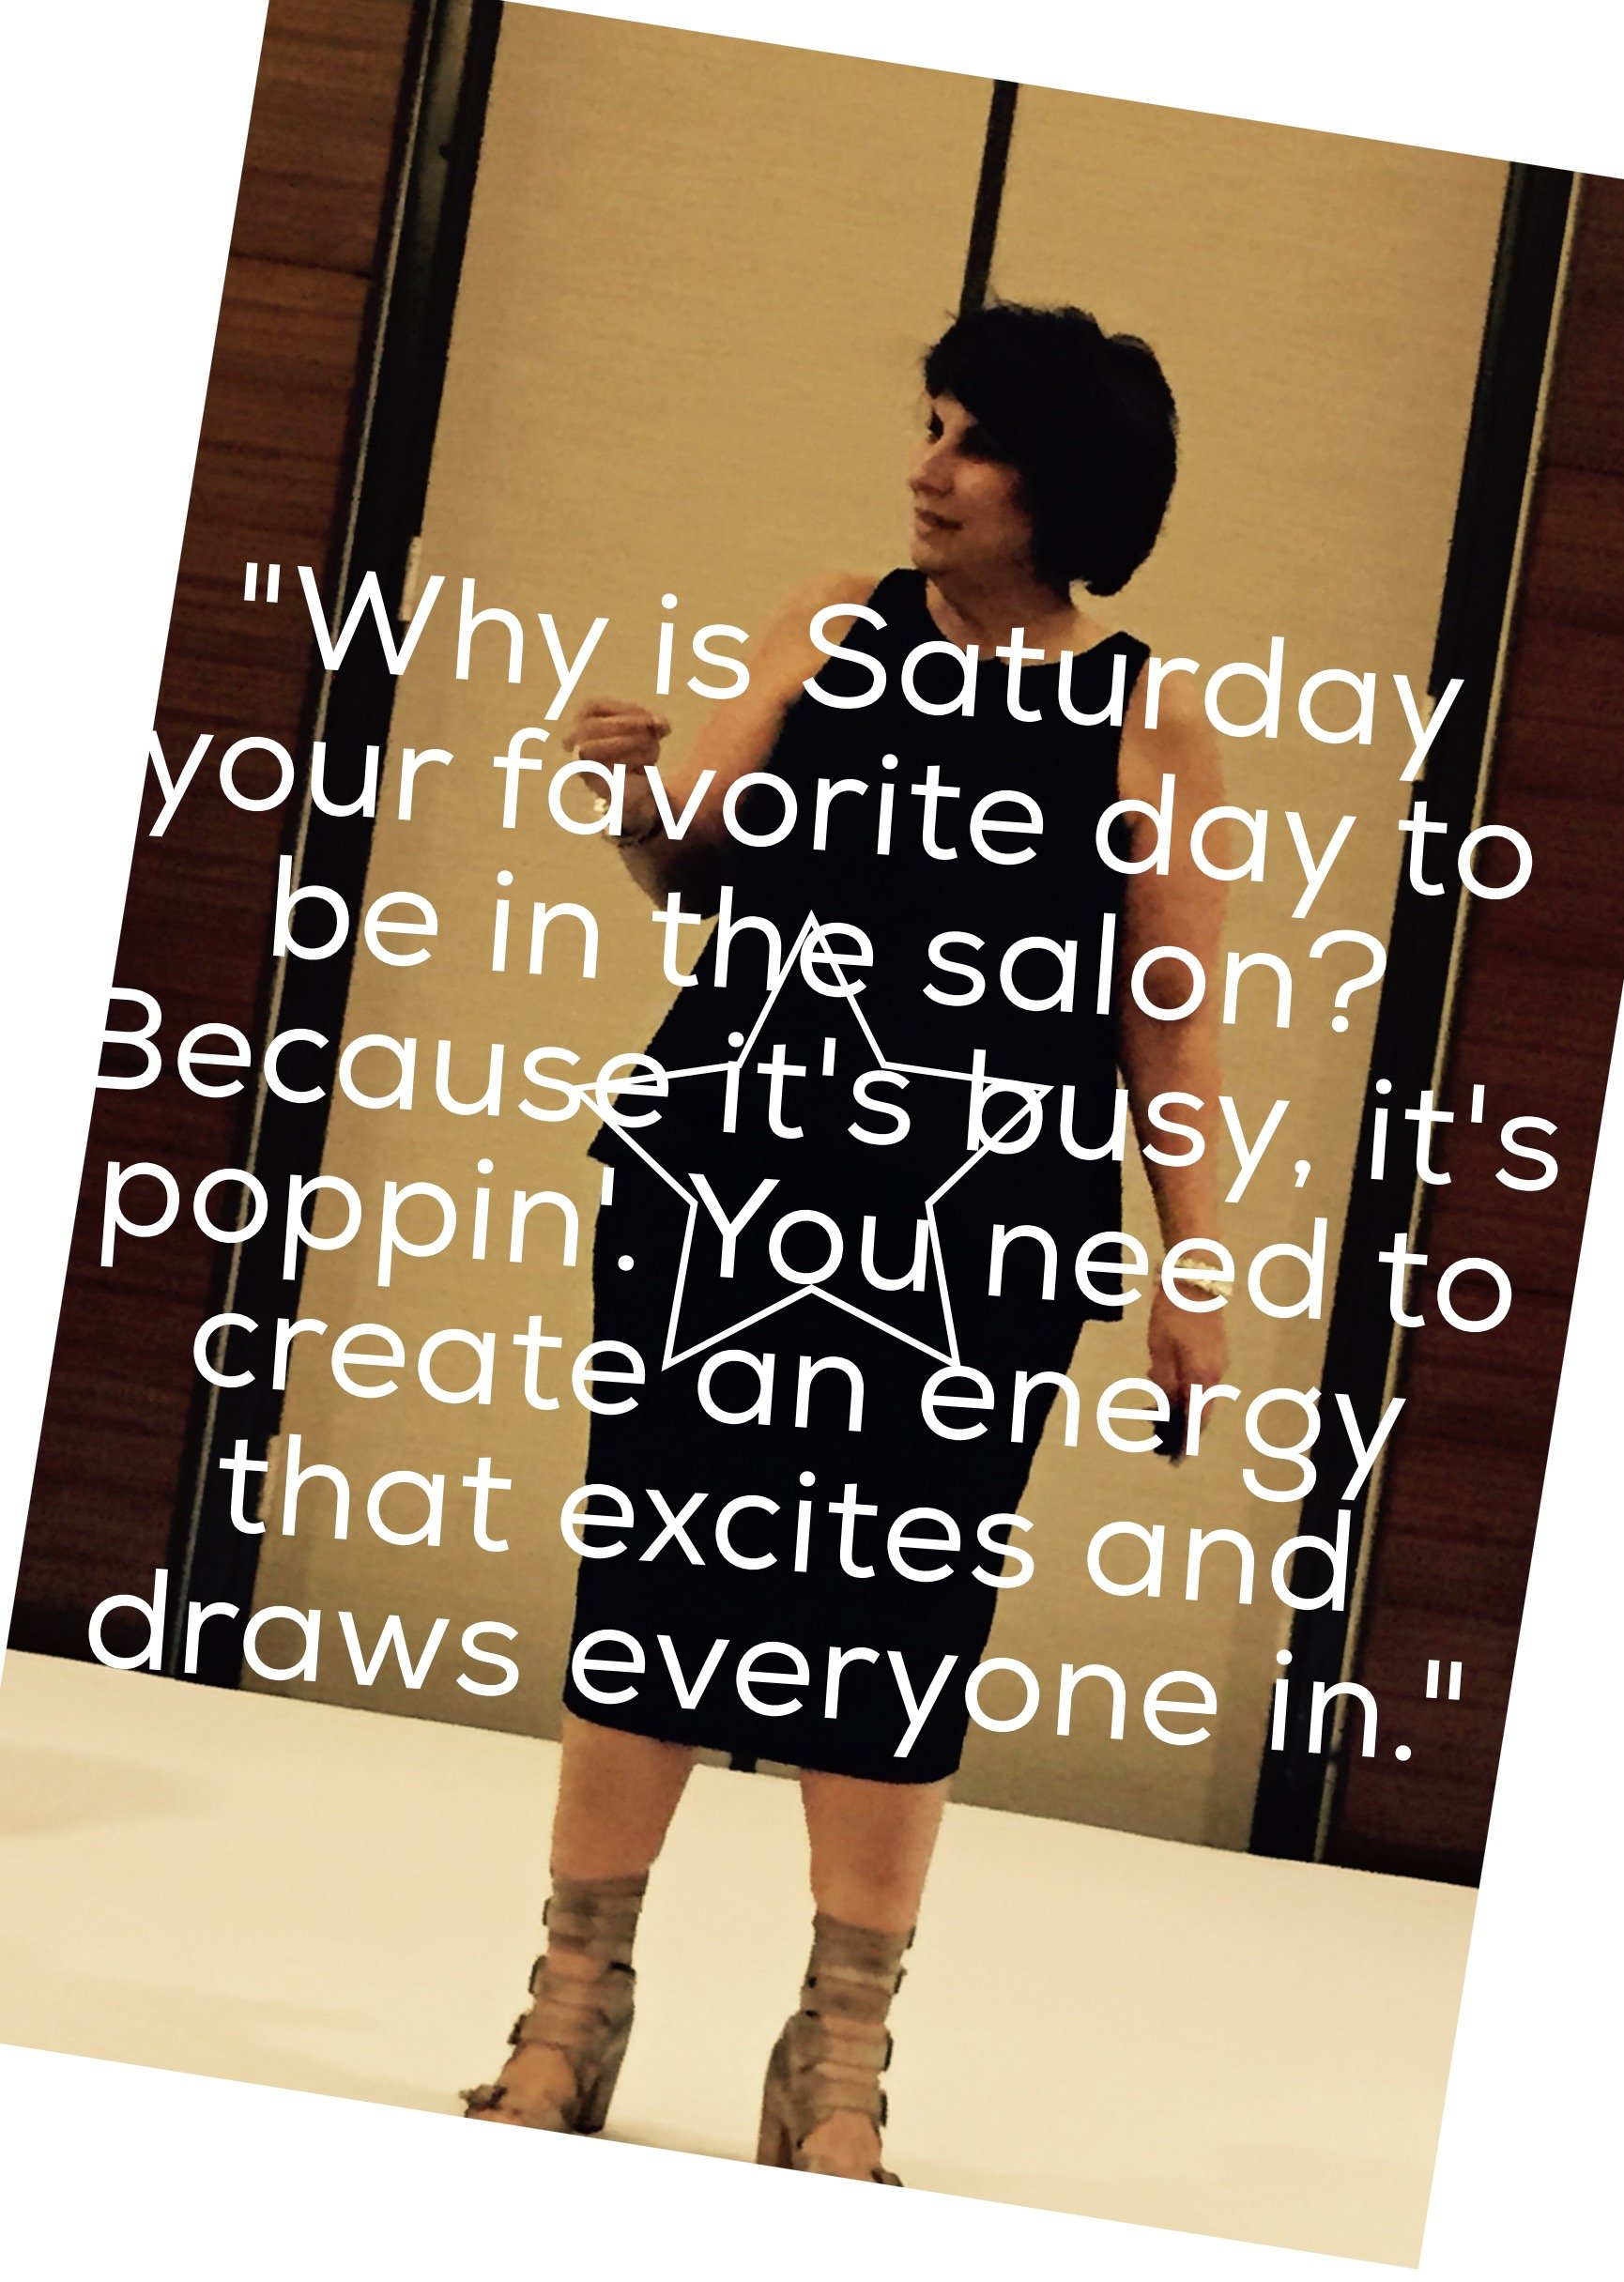 Terri Cowan on how salon owners can get everyone to want to work.  By creating an energy, an excitement in the salon environment.